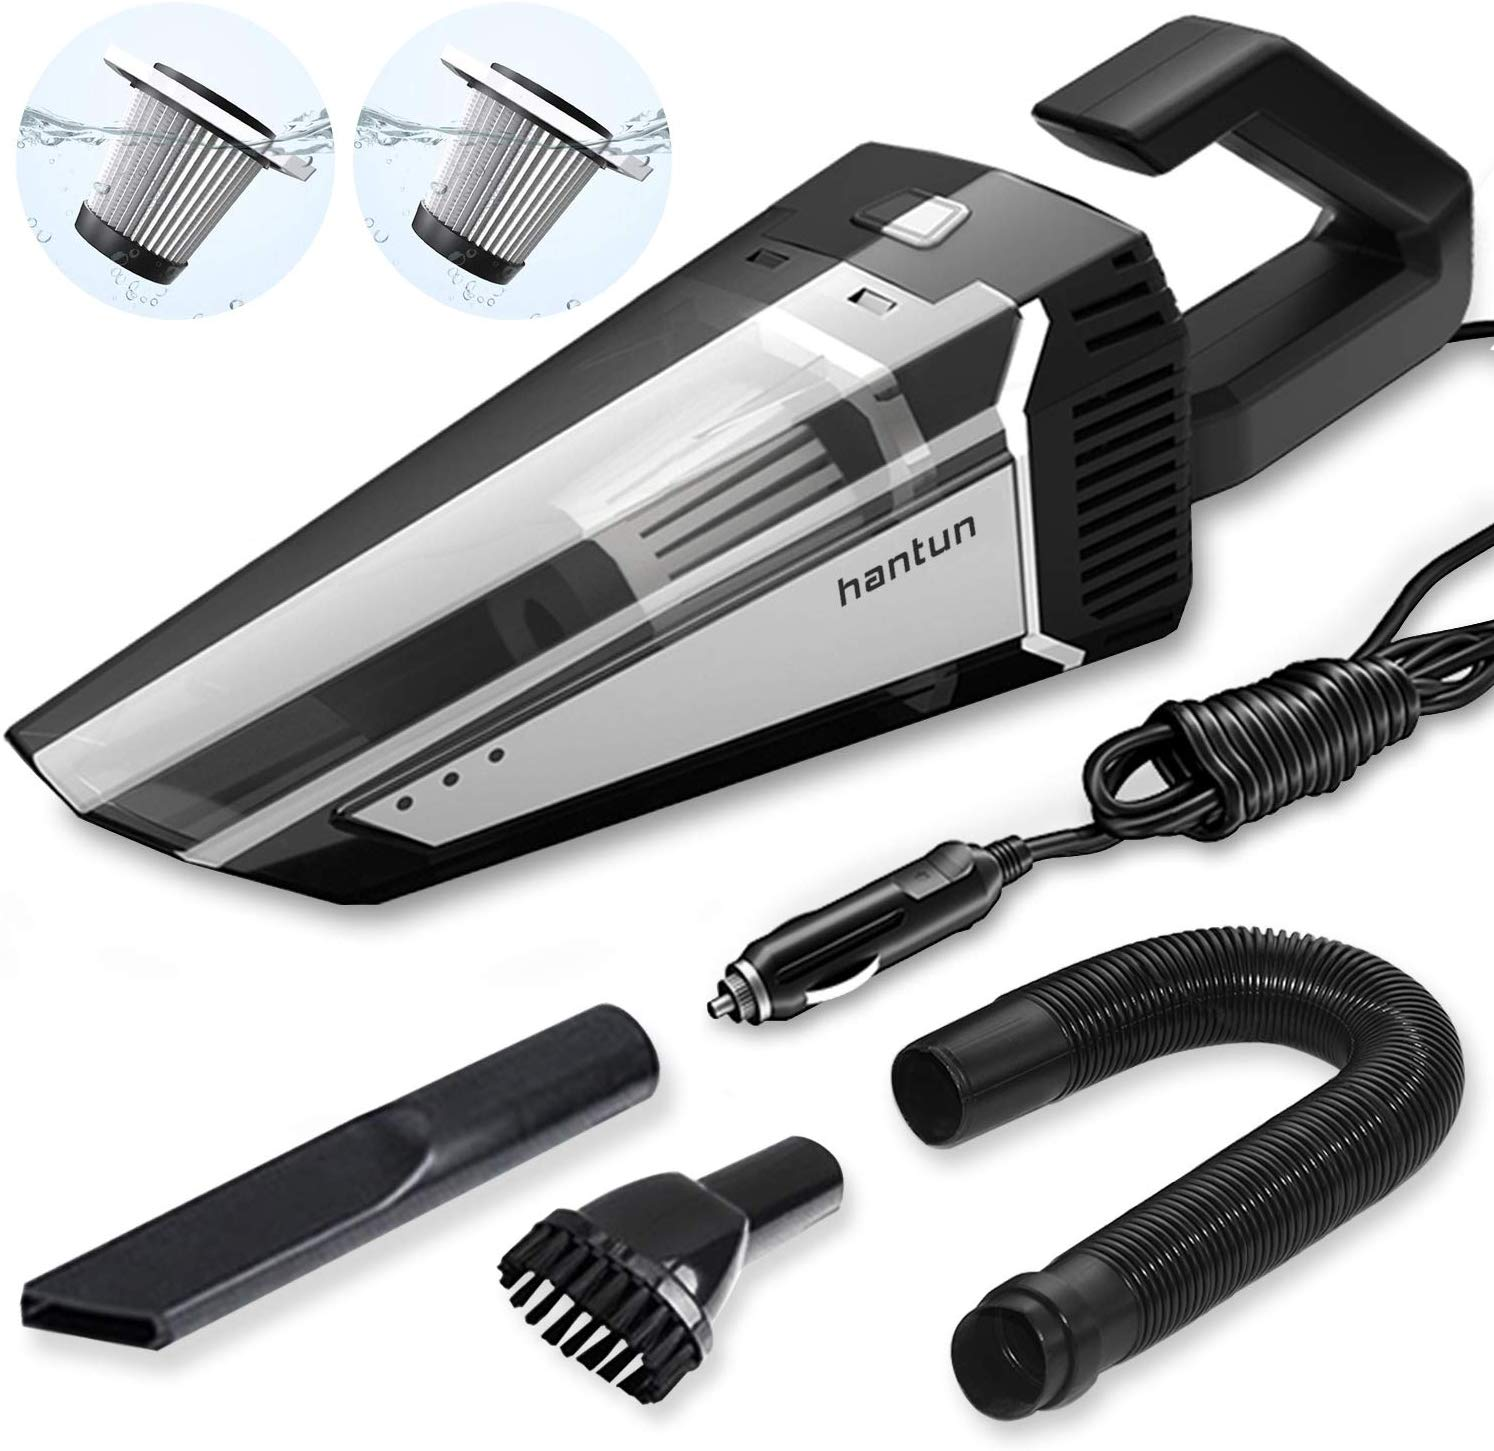 Hantun Car Vacuum, High Power DC 12V 5000PA Strong Suction Portable Handheld Car Vacuum Cleaner with 16.4FT Power Cord, Strong Aluminum Fan, HEPA Filter, Wet/Dry Use, for Car Cleaning